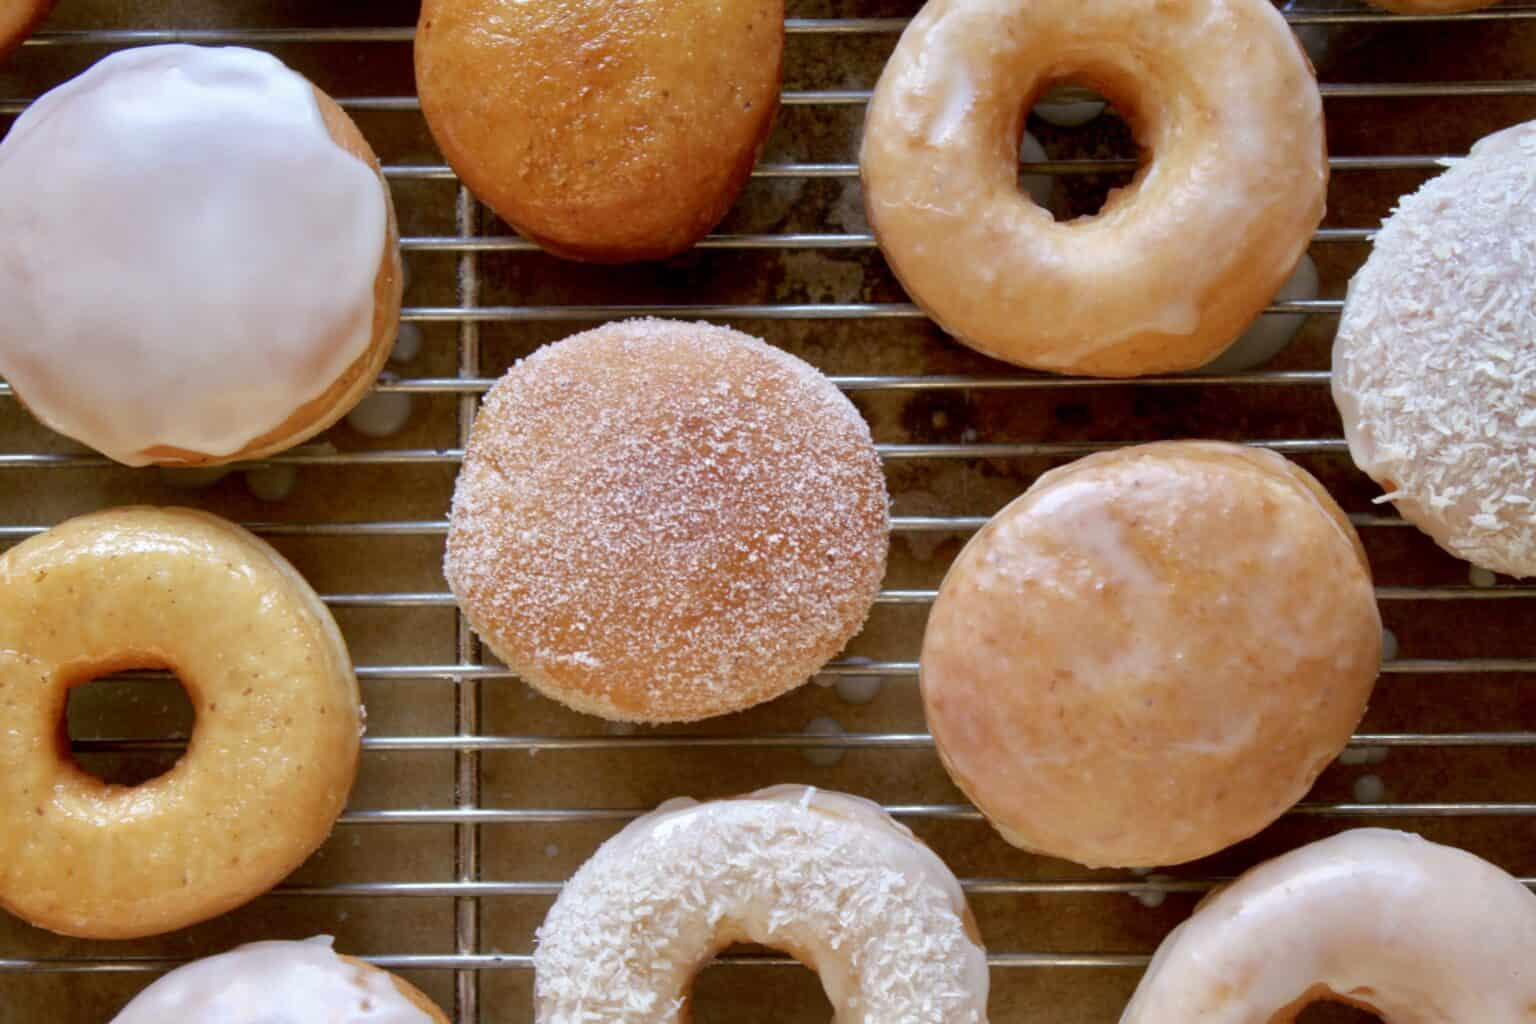 A selection of filled and ring vegan doughnuts.